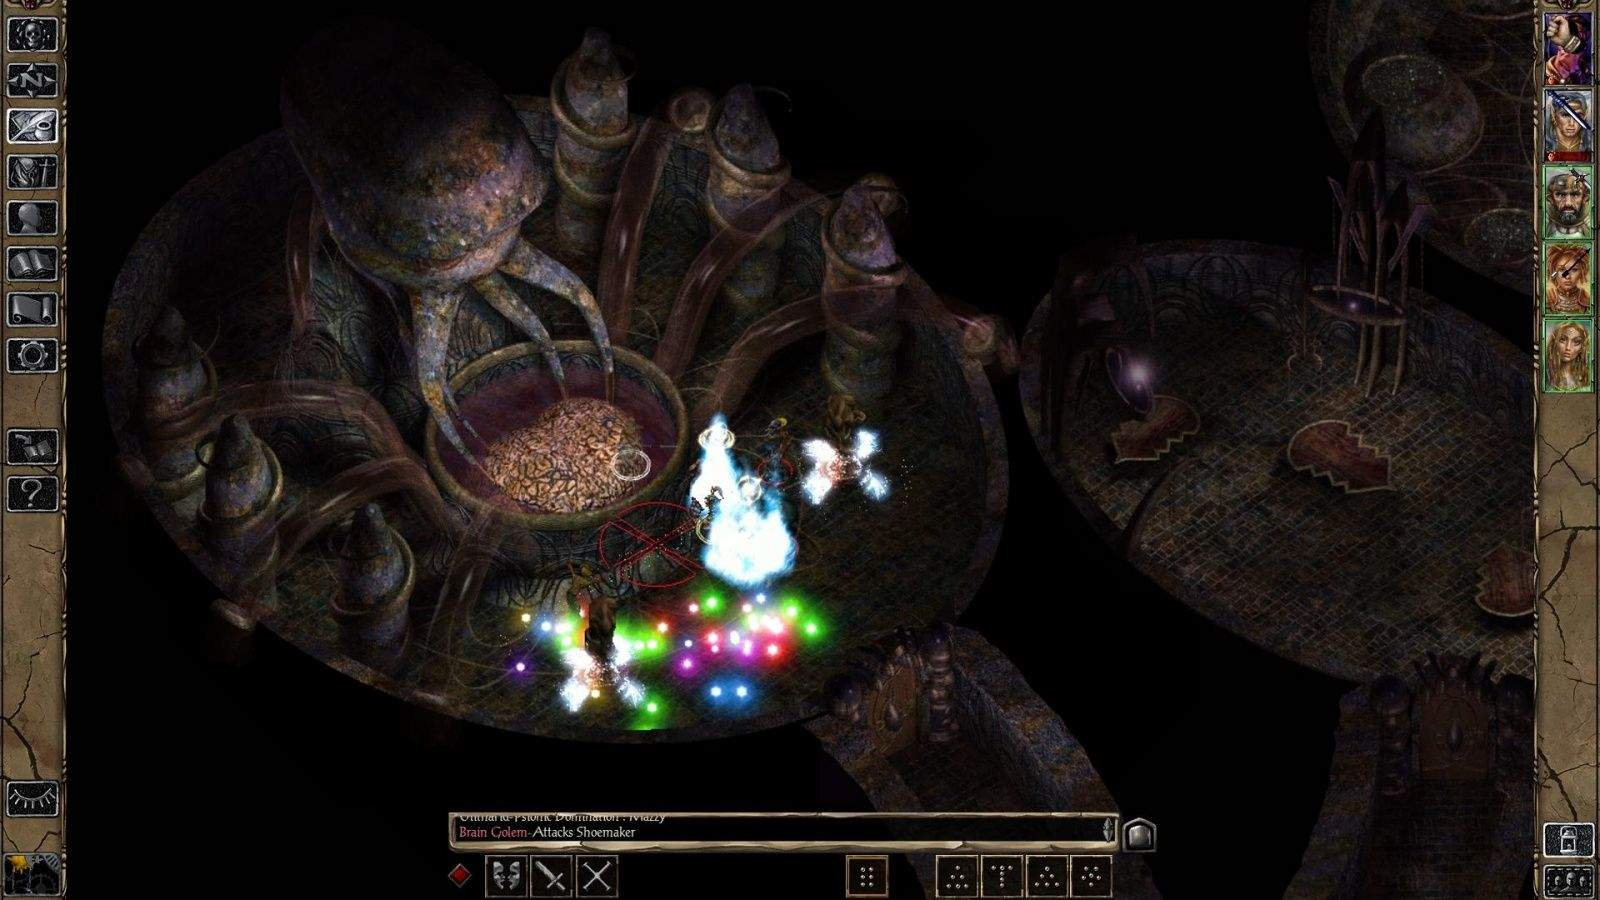 Baldur's Gate II Screen